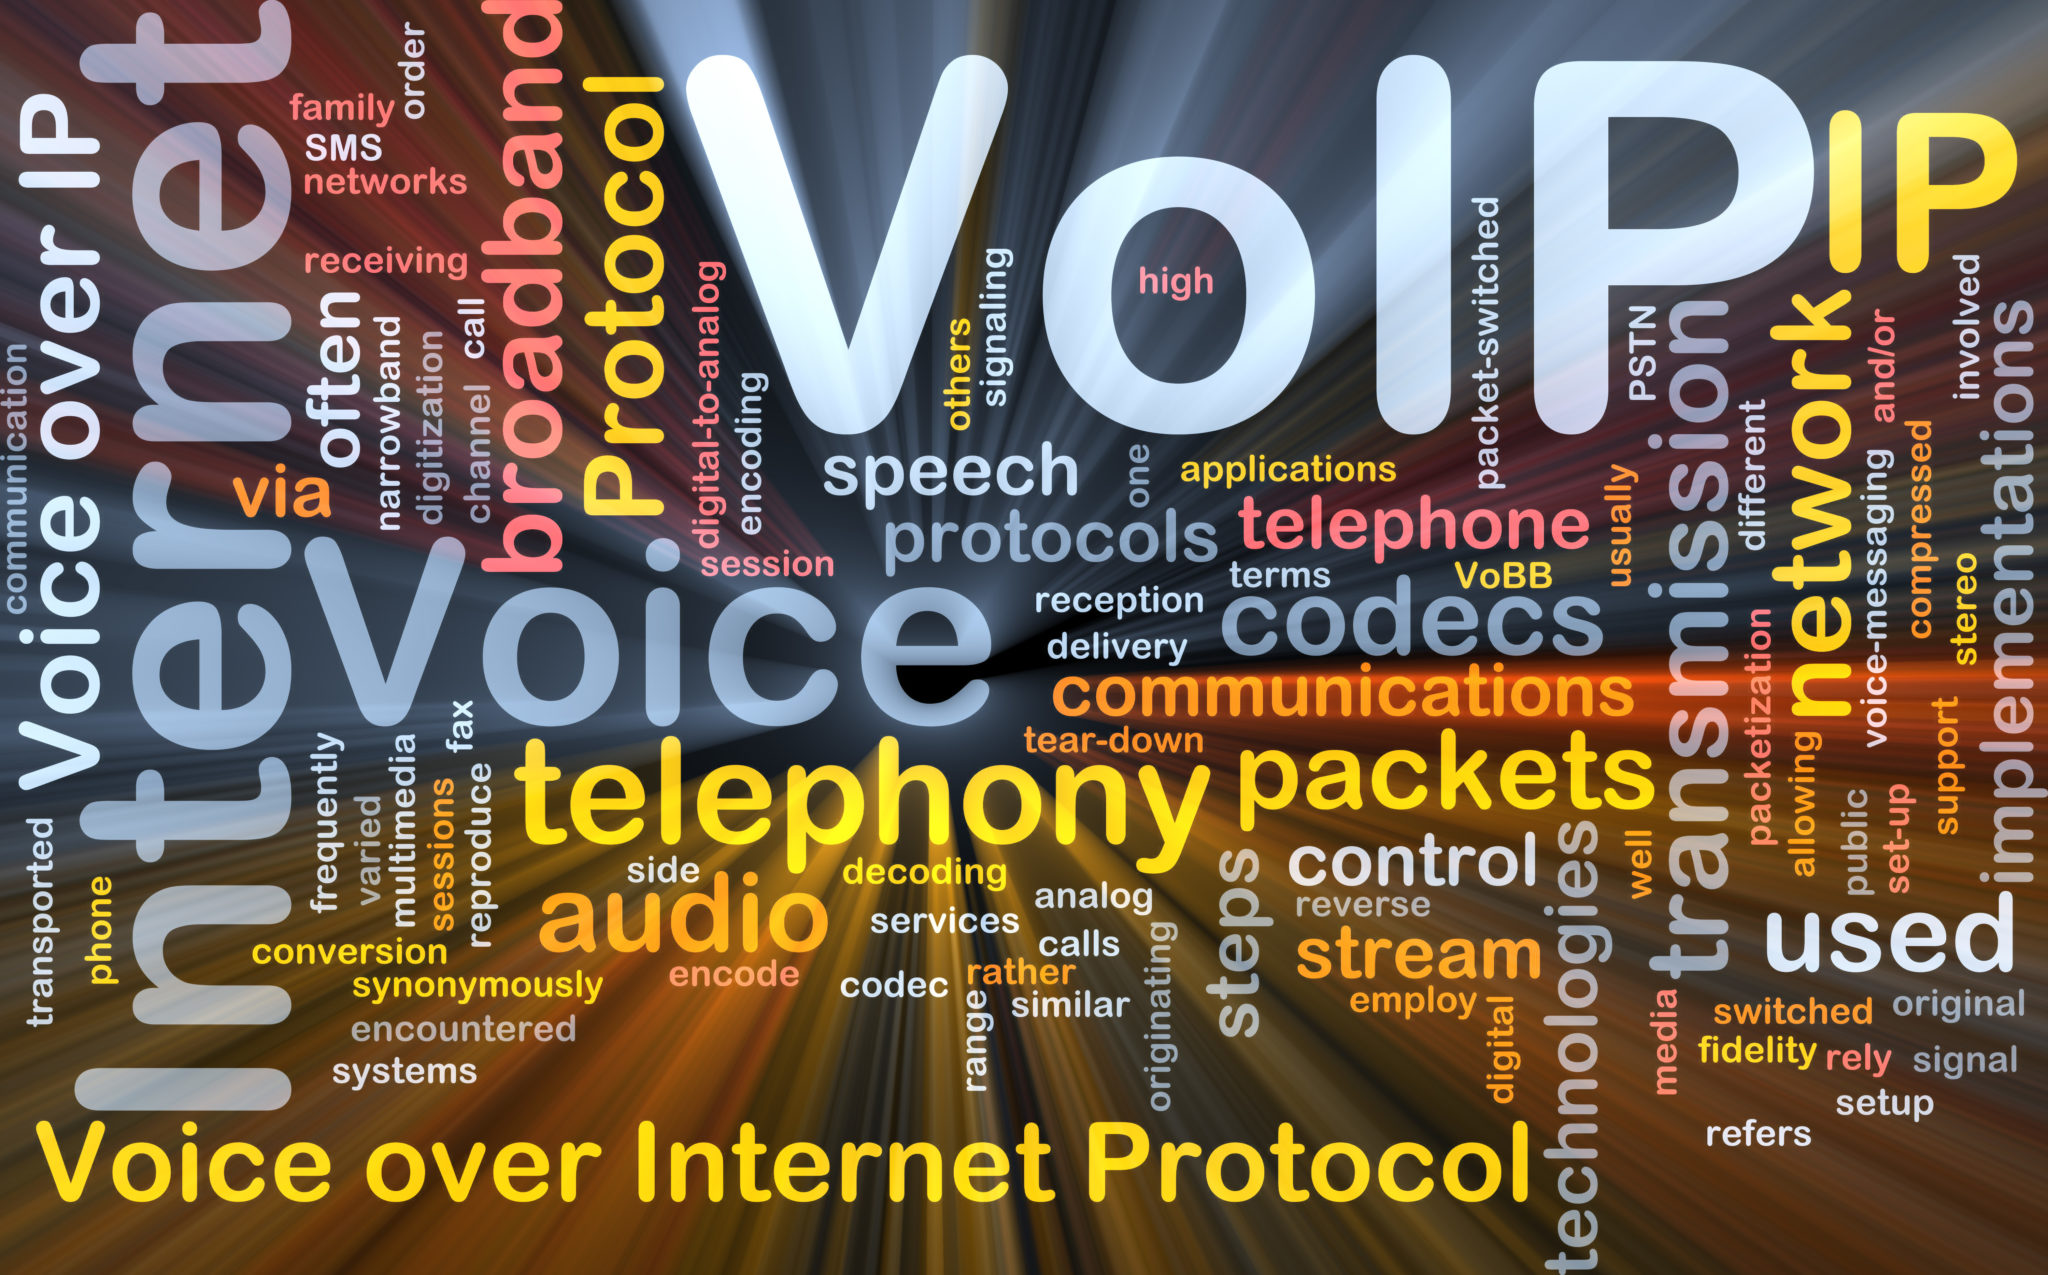 Cloud-based VoIP phone systems are more important than ever in a pandemic